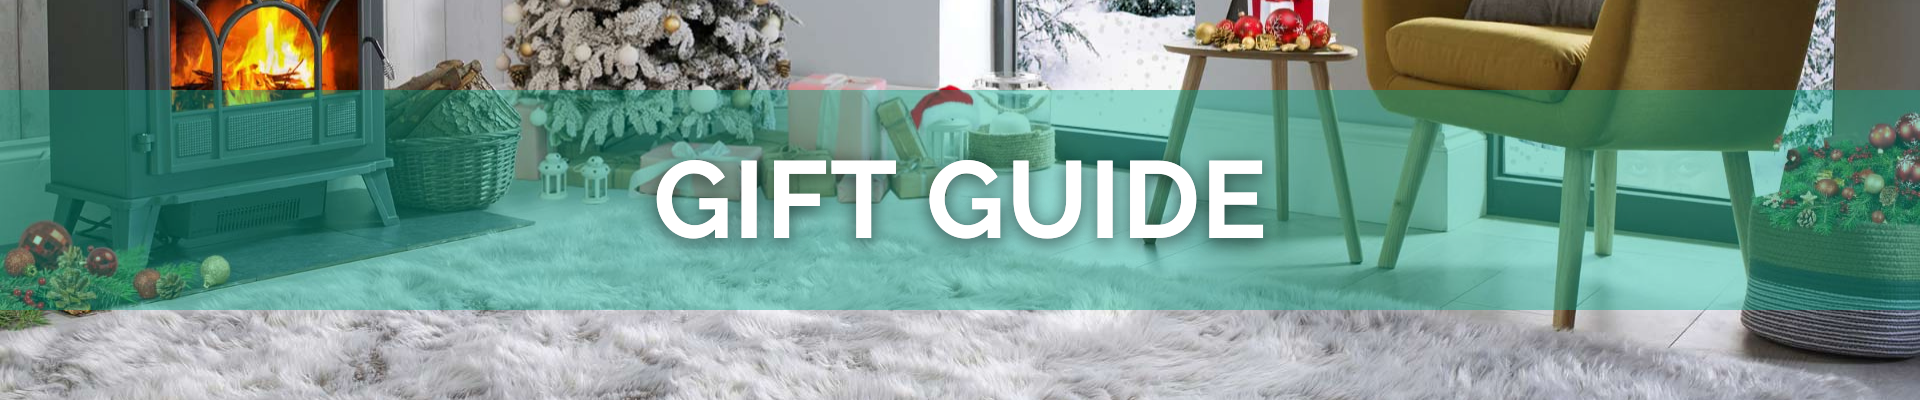 Gift_Guide_Landing_Page_1_